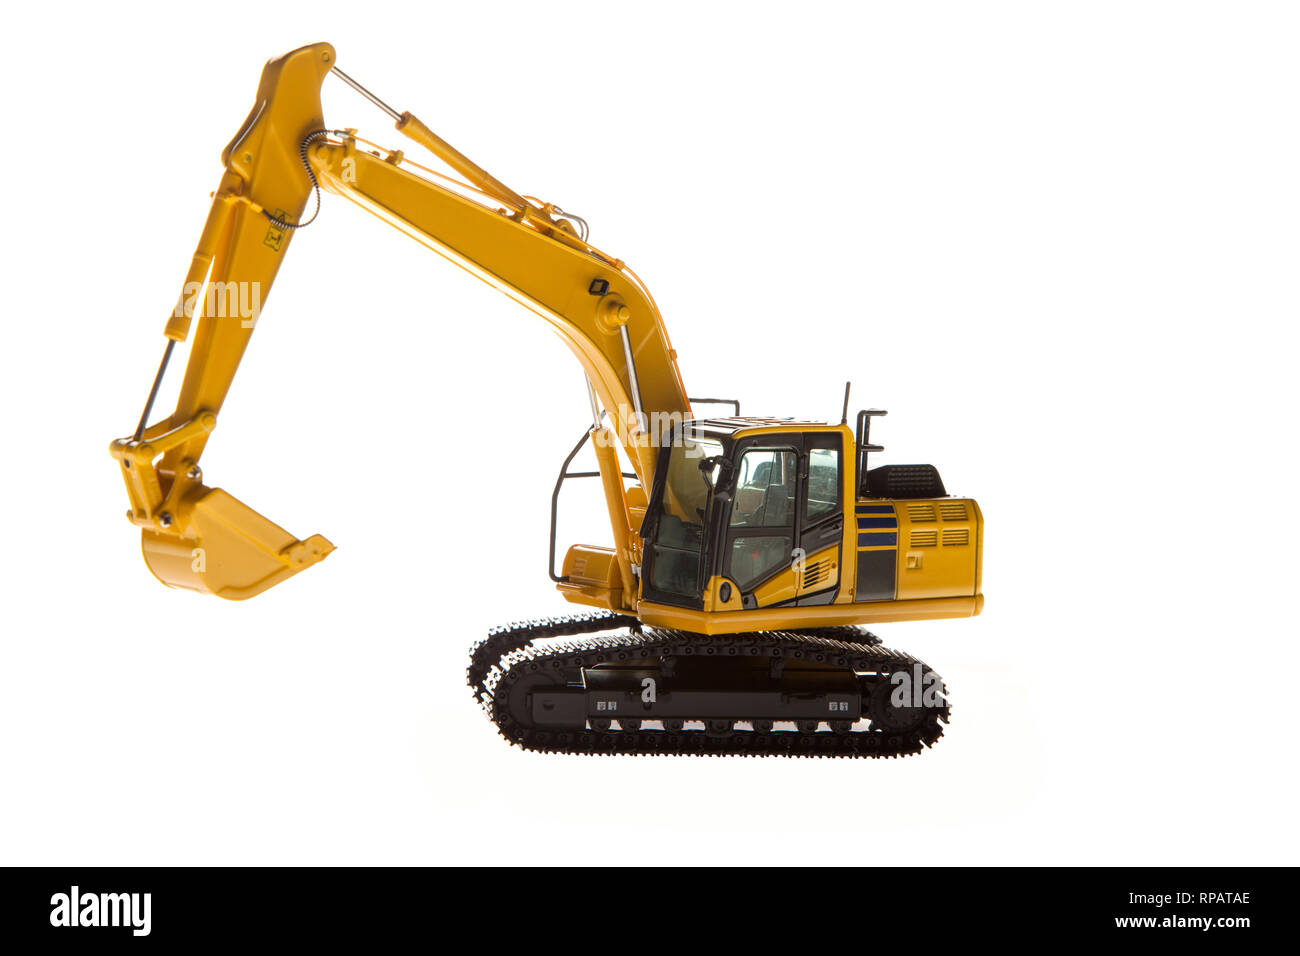 Excavator construction machinery front angle - Stock Image